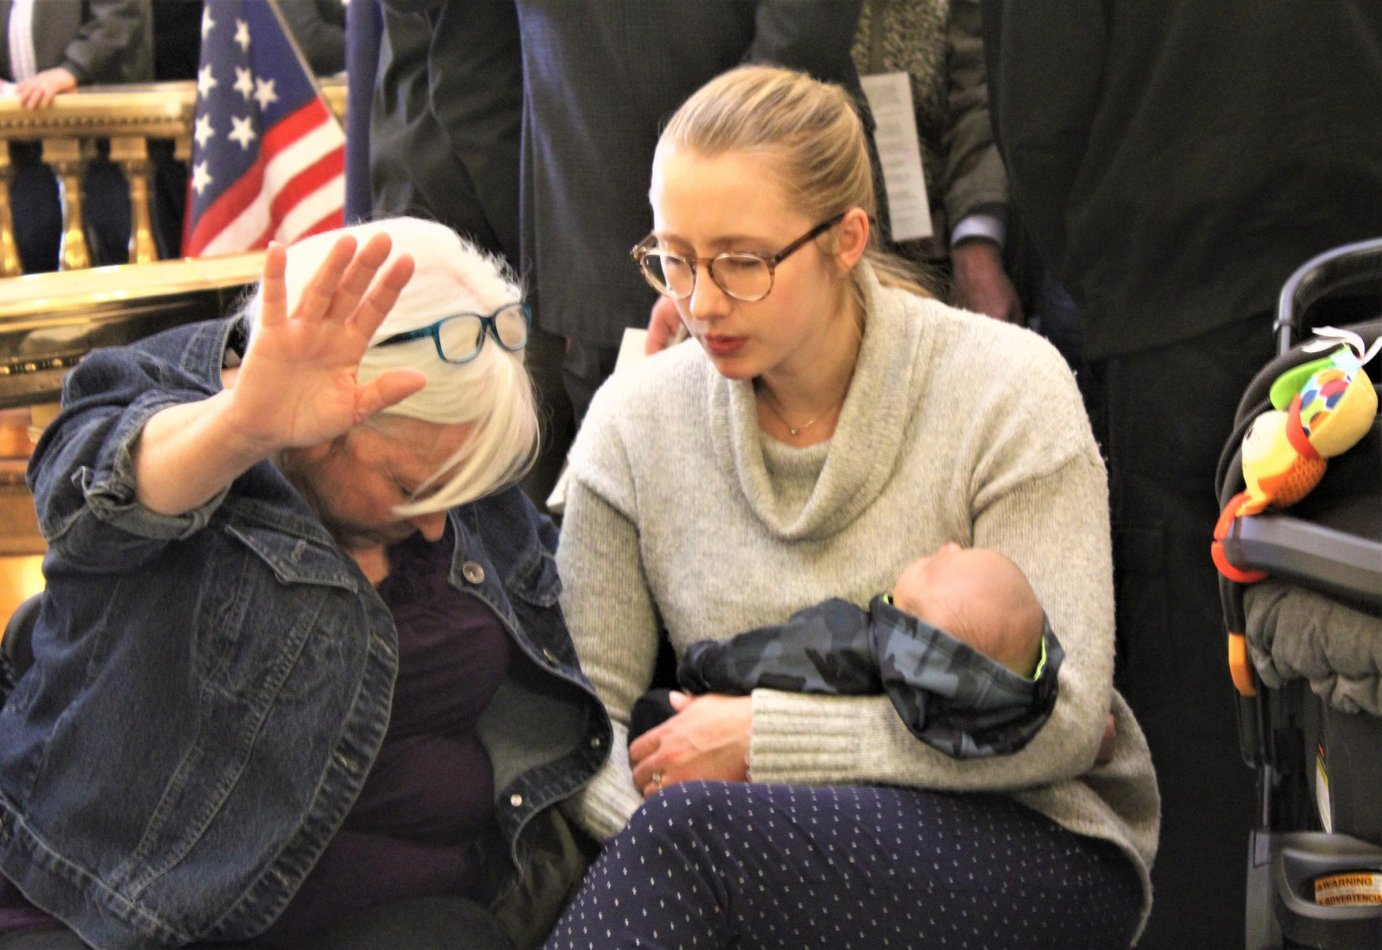 Abortion protestors this year in Topeka, where Medicaid expansion and an anti-abortion amendment to the state constitution have become entagled. (Photo by Jim McLean, Kansas News Service)